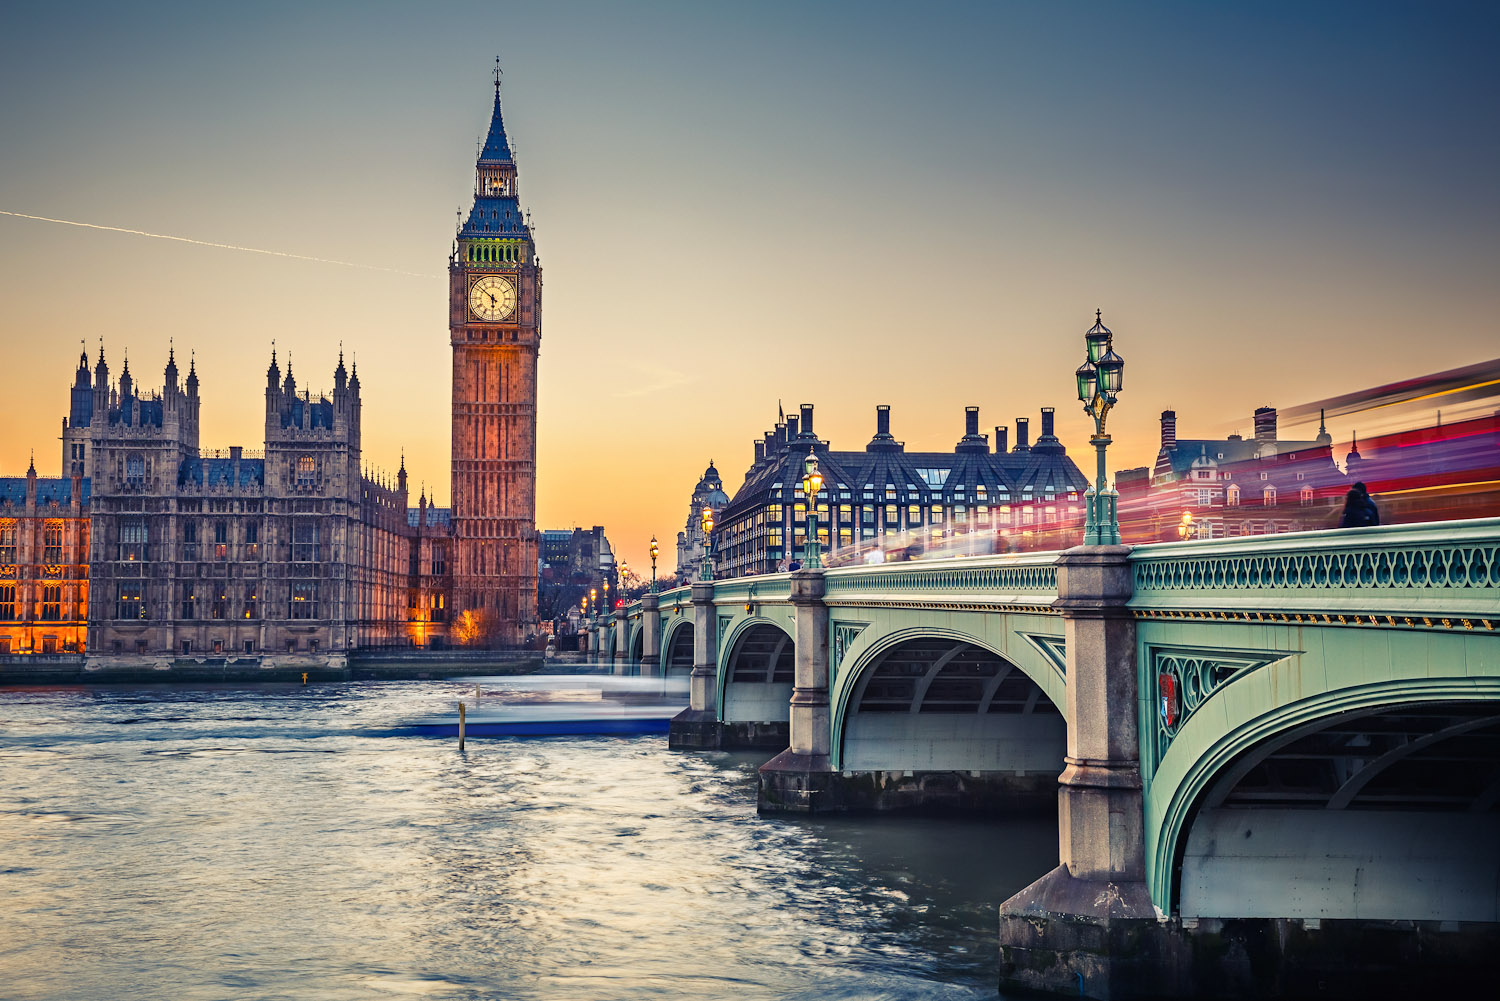 London travel guide for first-time visitors - Best Places to Visit in Europe - planningforeurope.com (1)